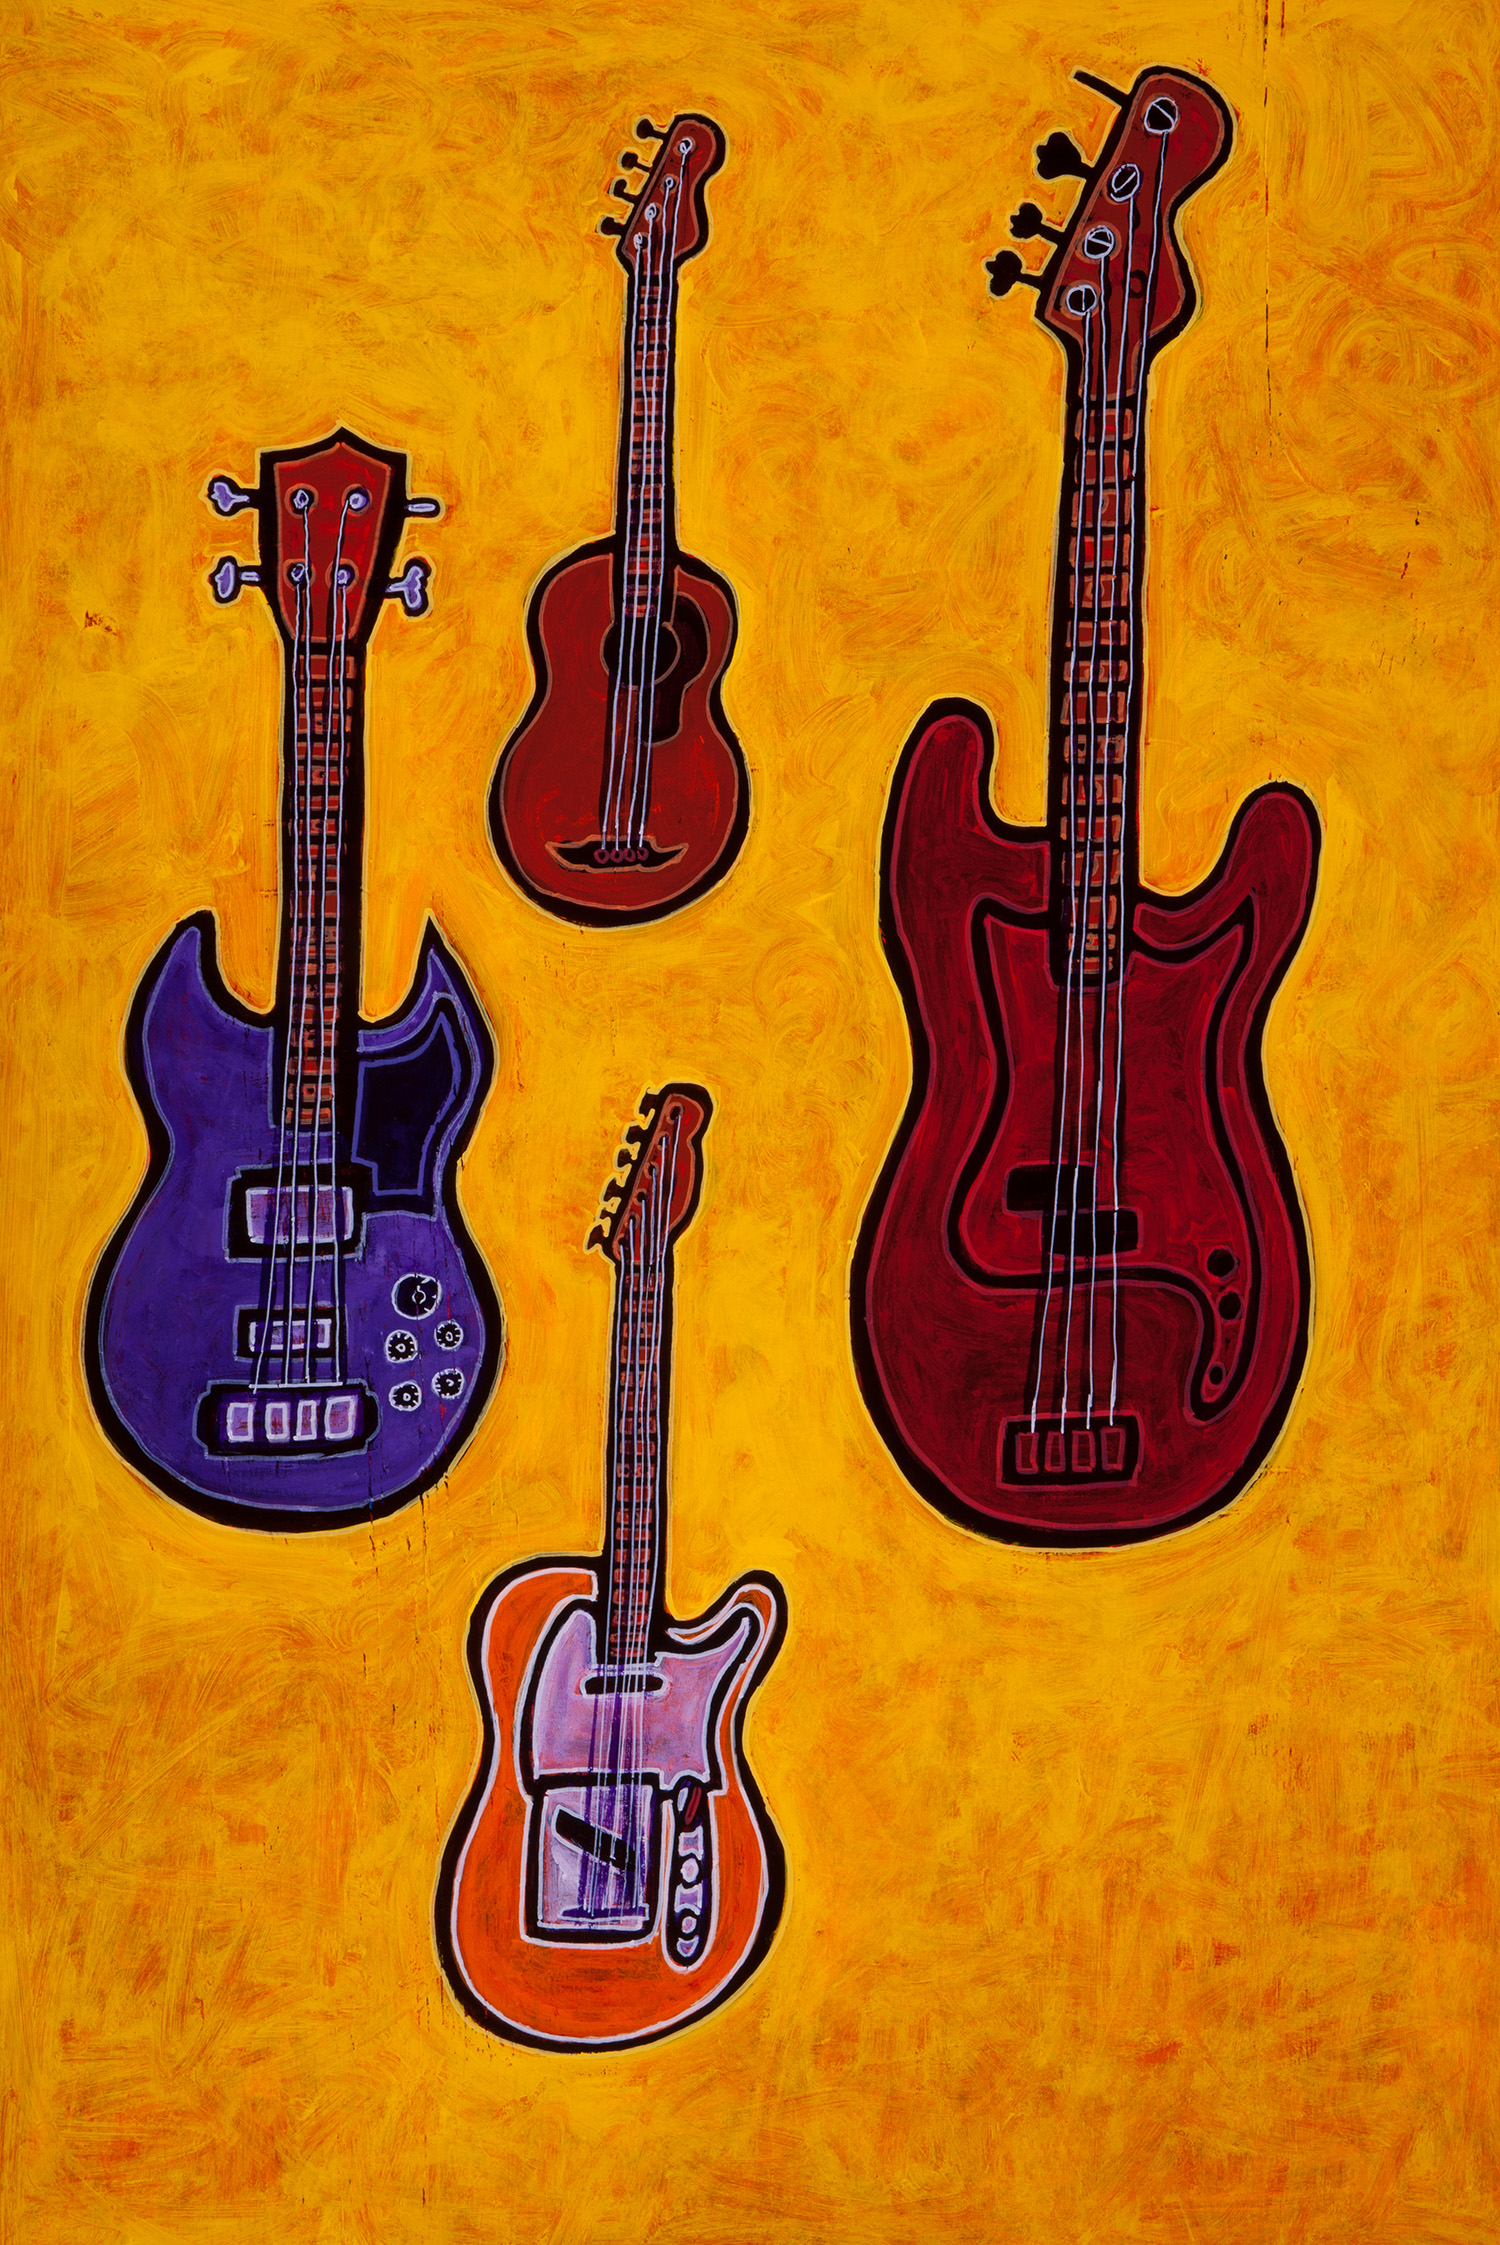 bass guitars, 2012